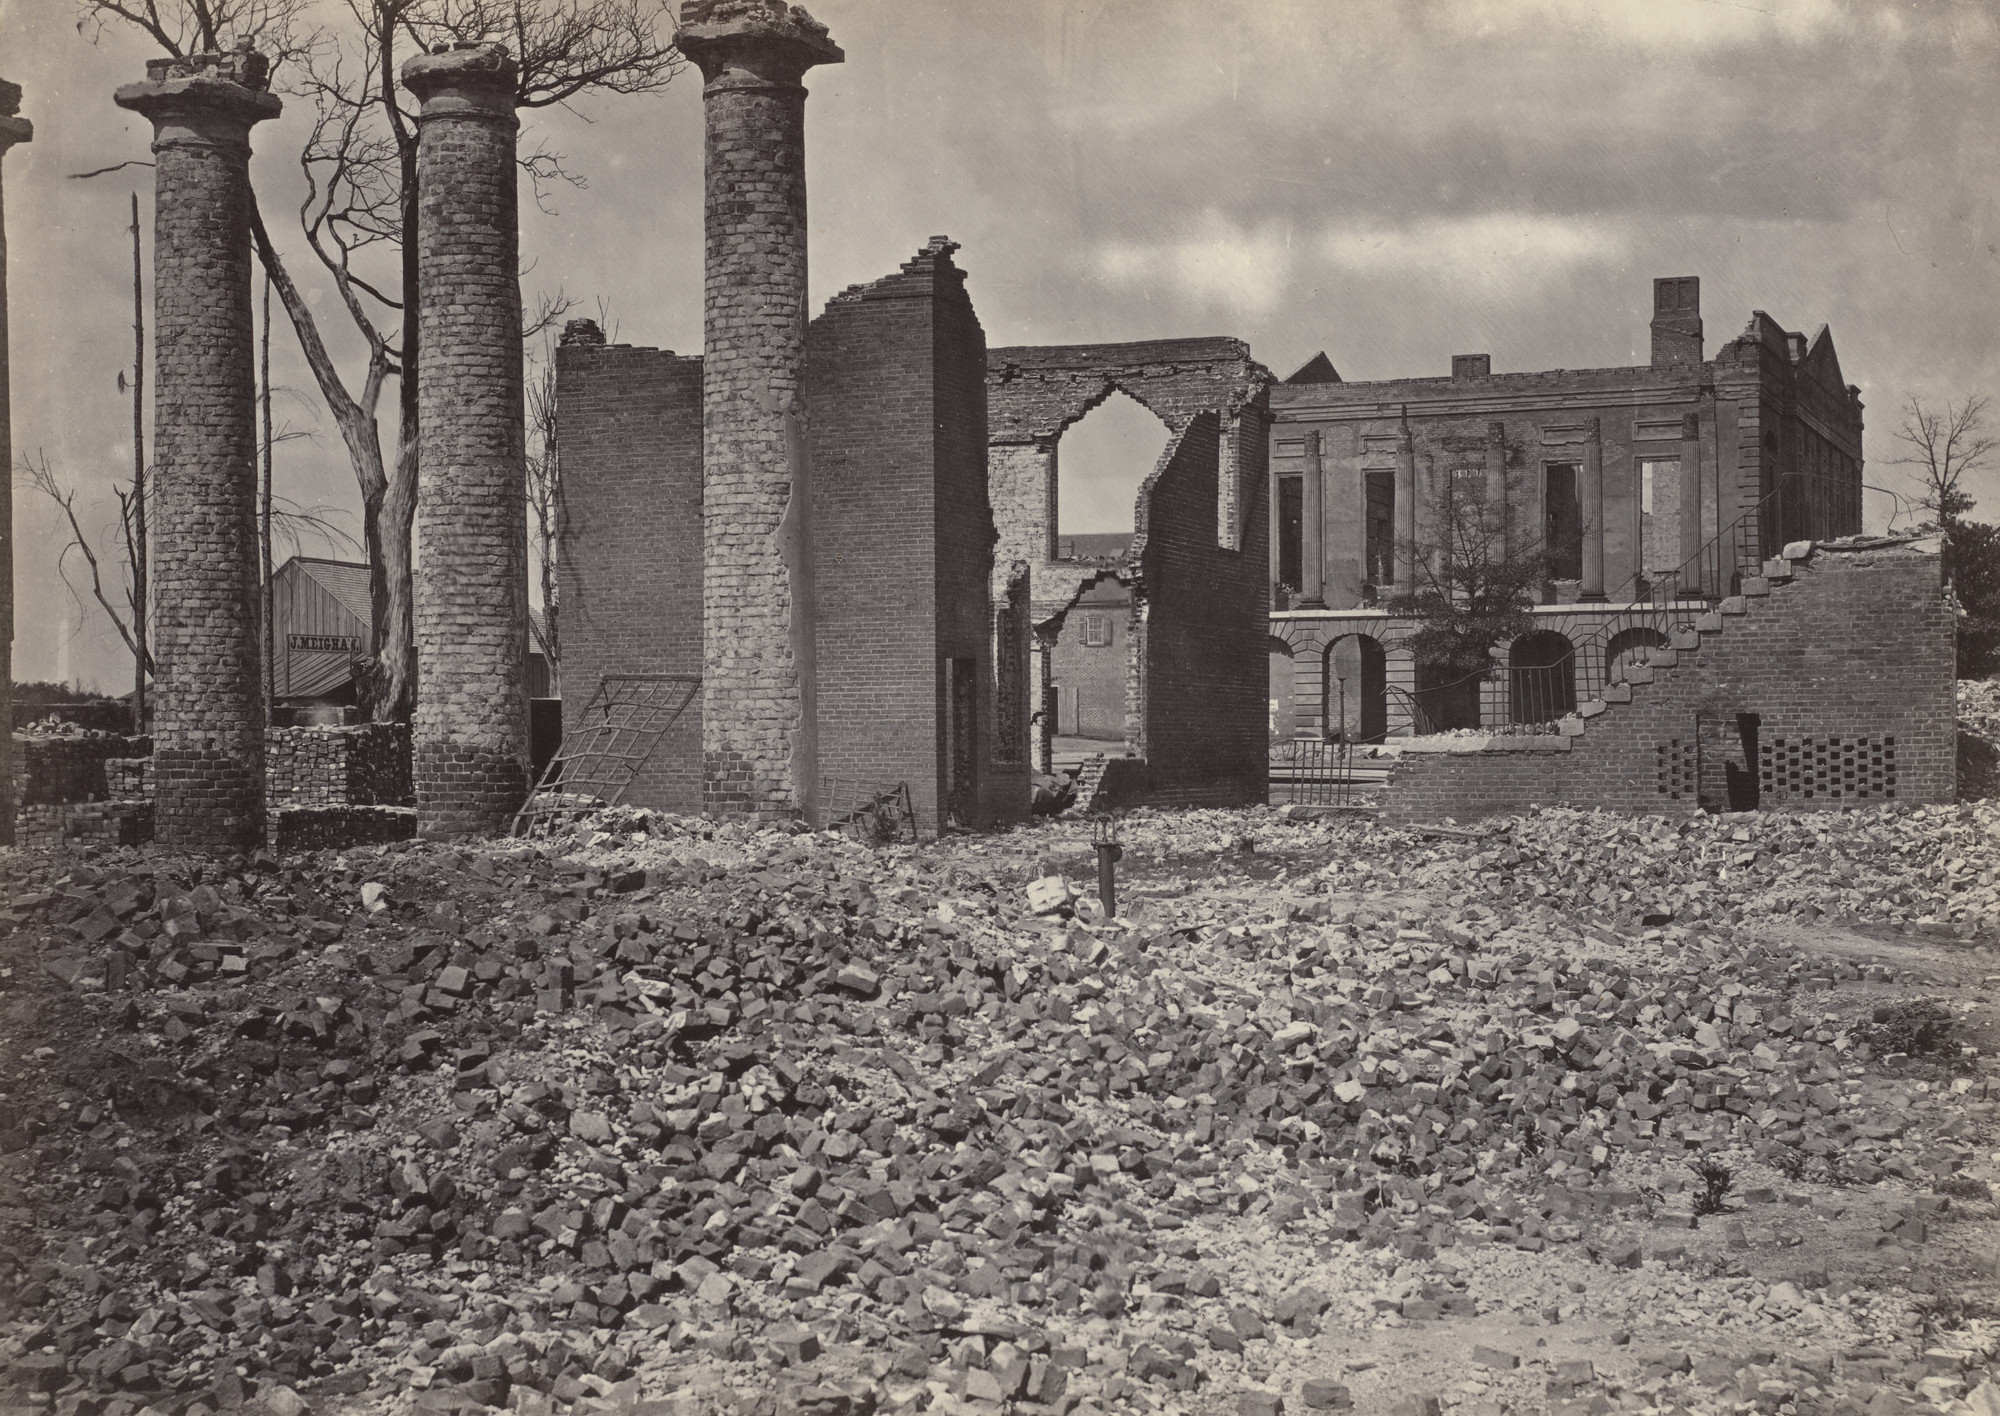 George Barnard. Ruins in Columbia, South Carolina from the album Photographic Views of Sherman's Campaign. 1864-65